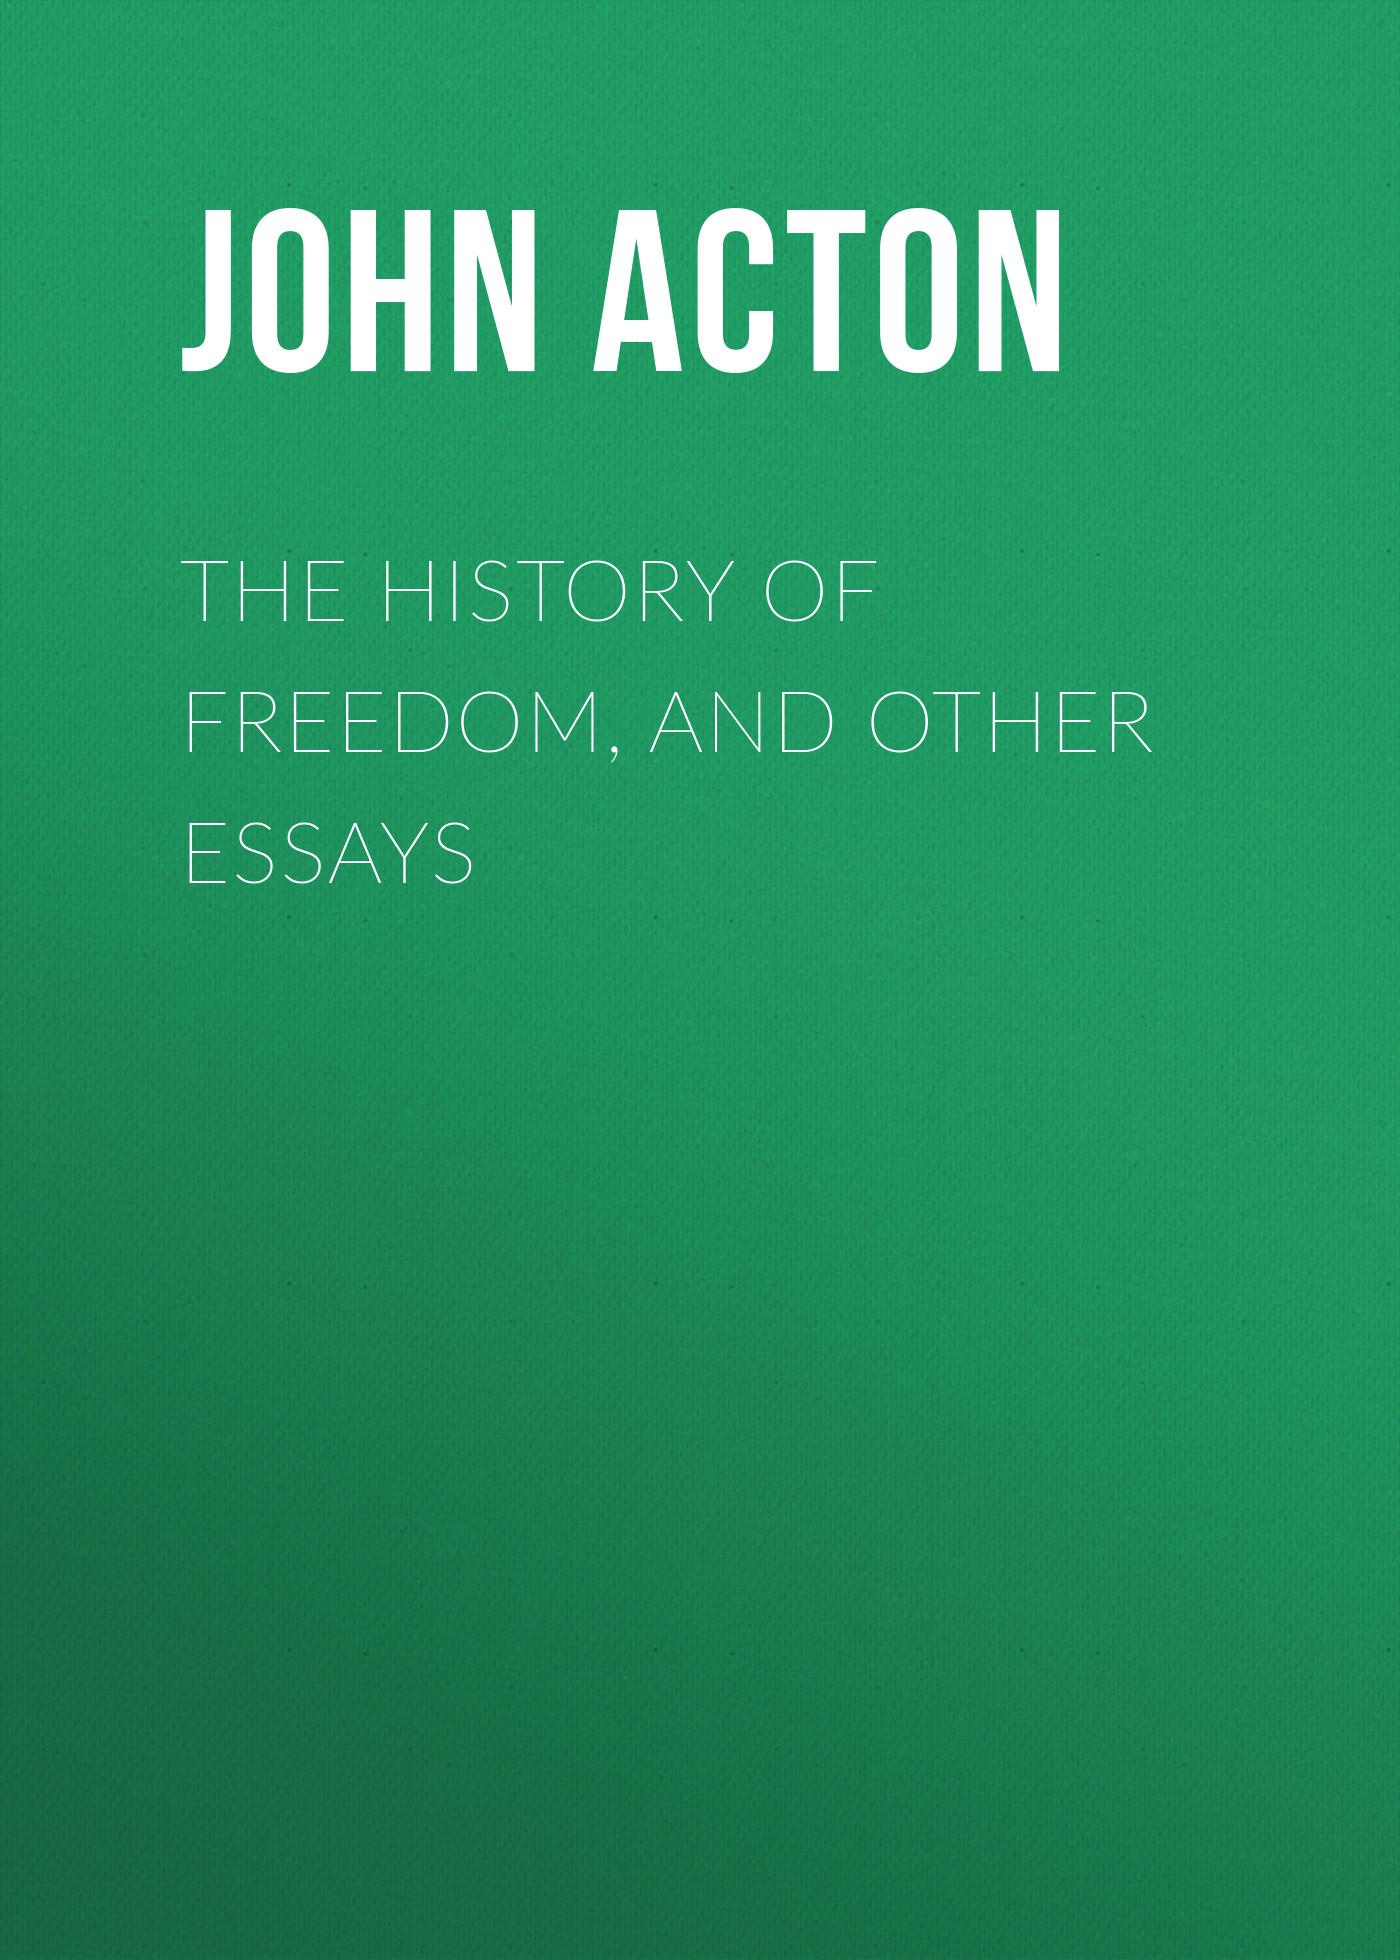 Acton John Emerich Edward Dalberg Acton, Baron The History of Freedom, and Other Essays acton